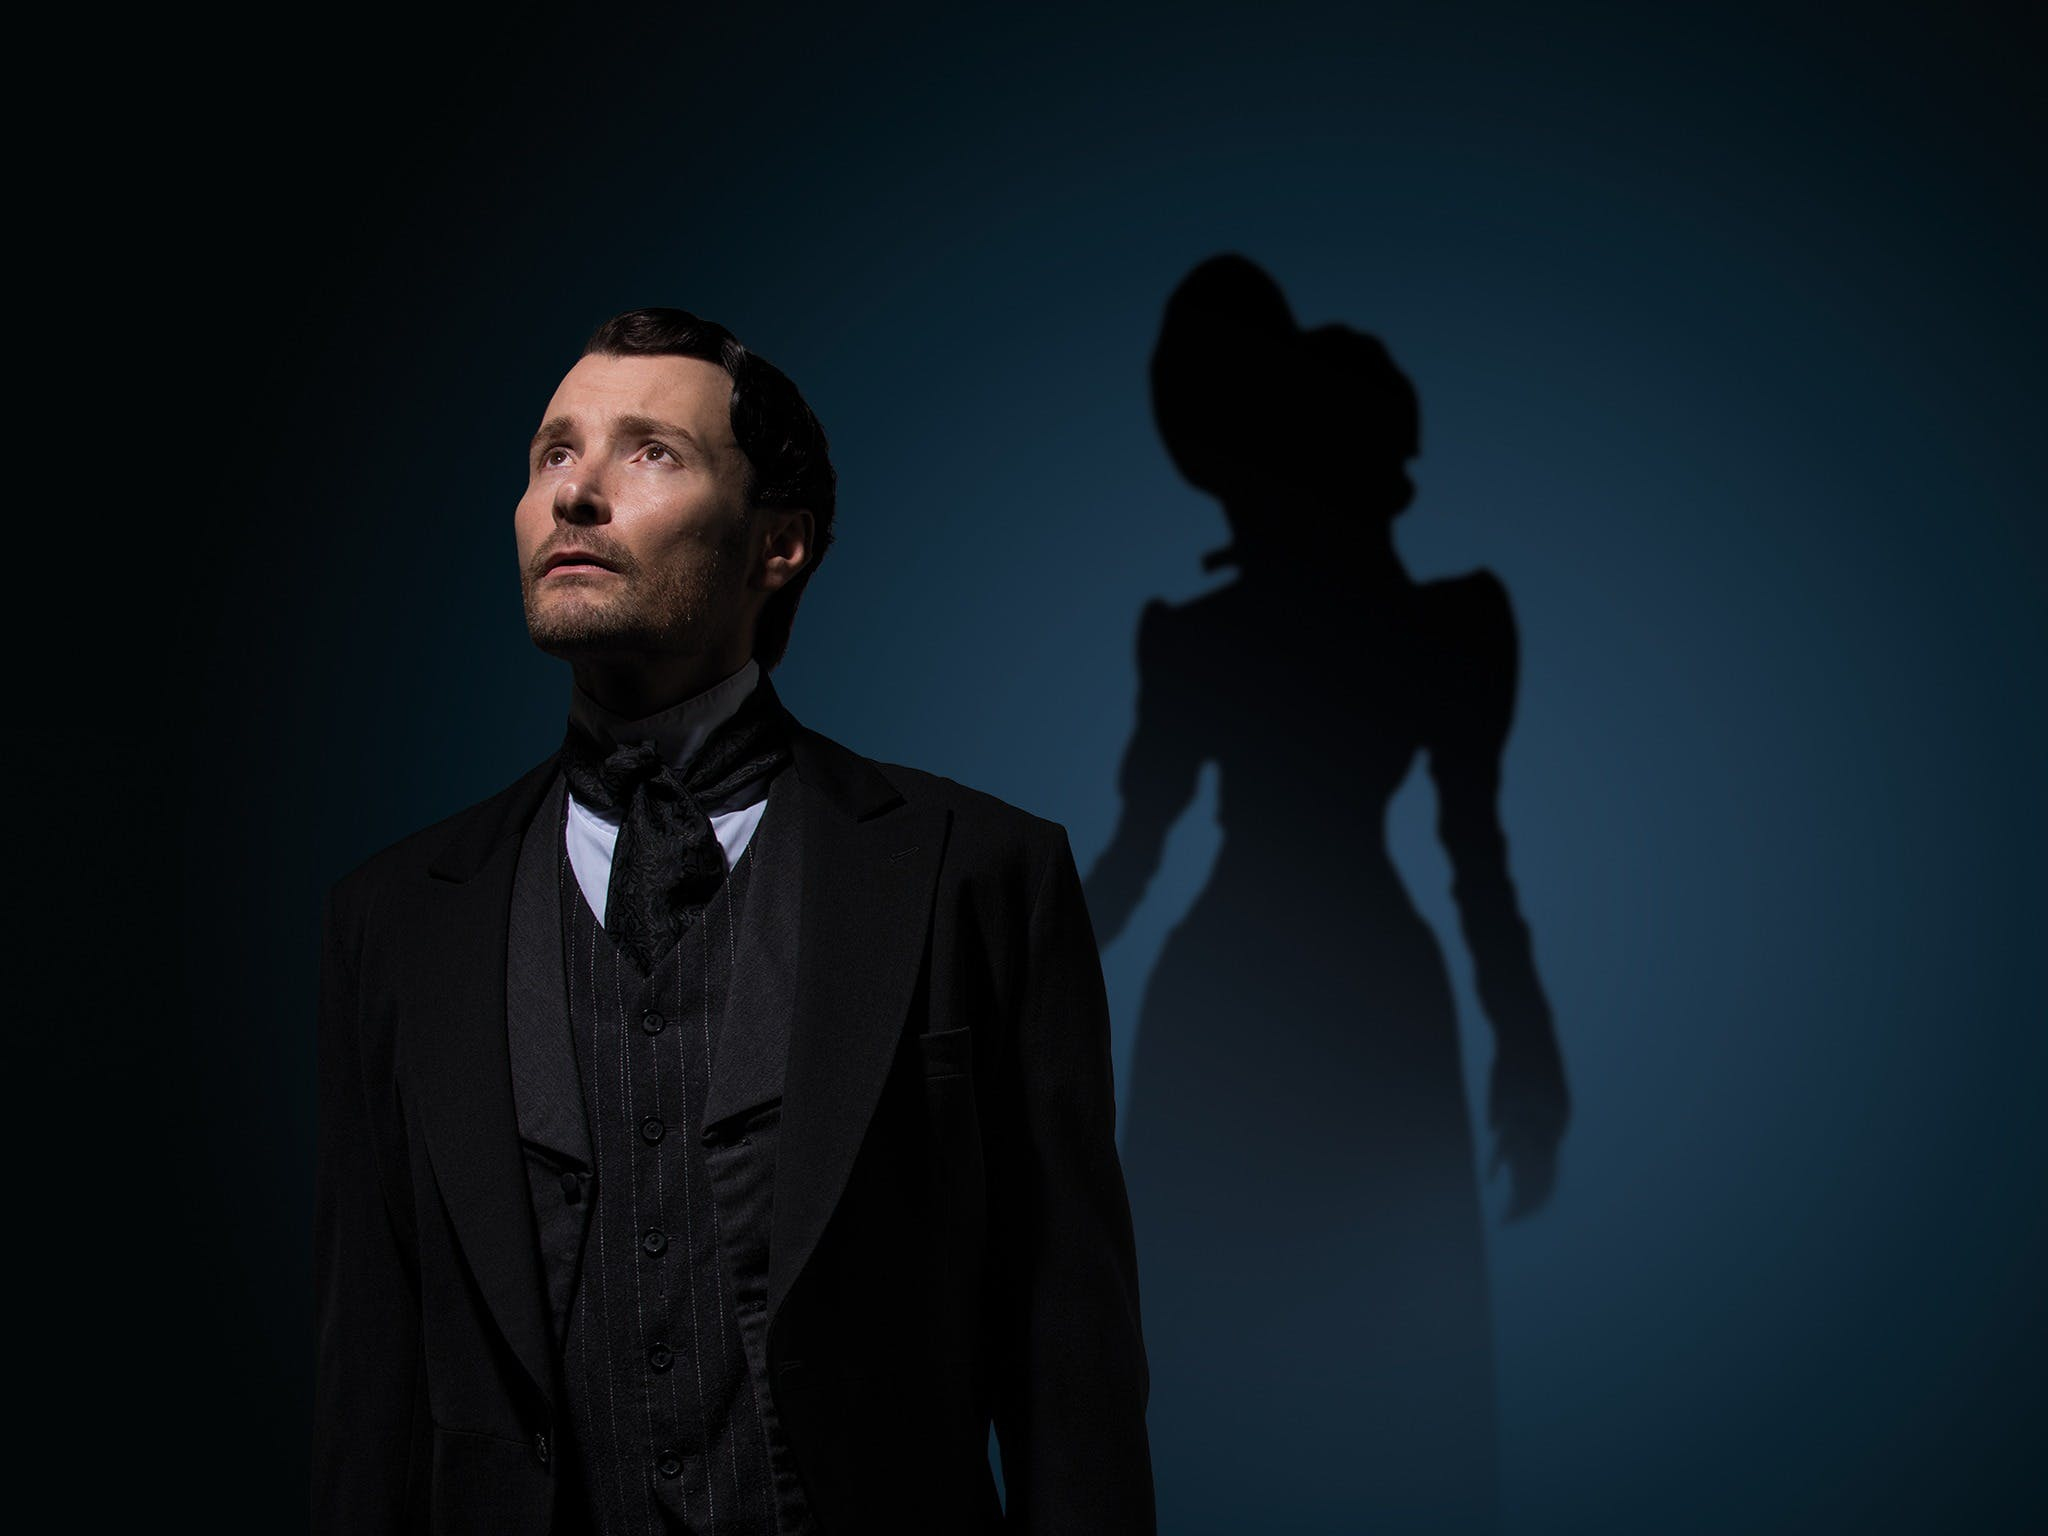 The Woman in Black by Susan Hill and Stephen Mallatrat - Kempsey Accommodation